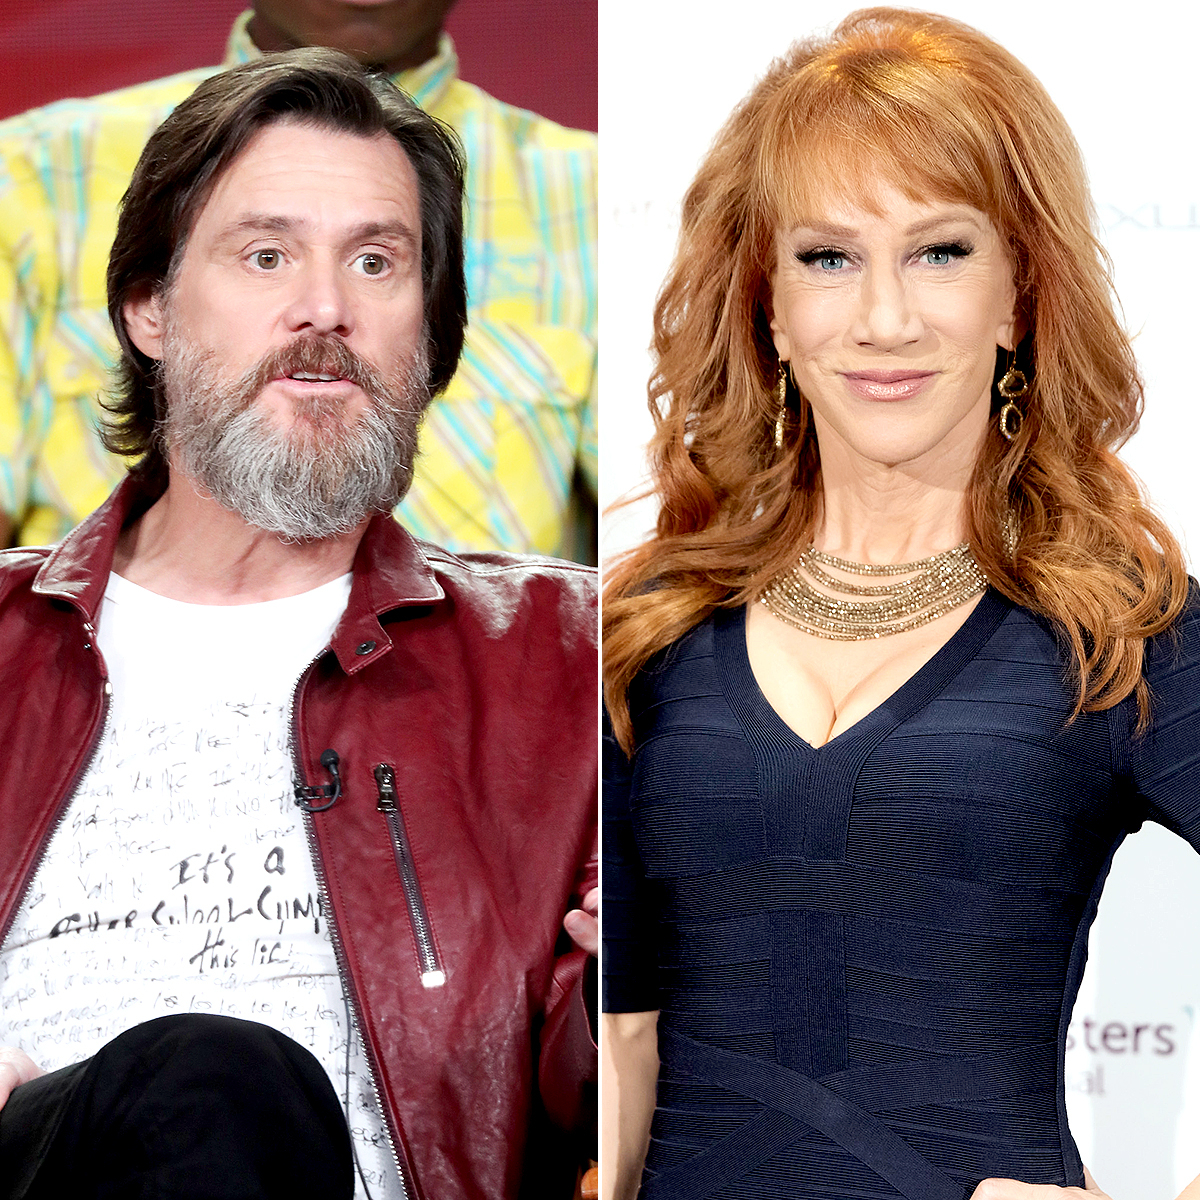 Jim Carrey and Kathy Griffin